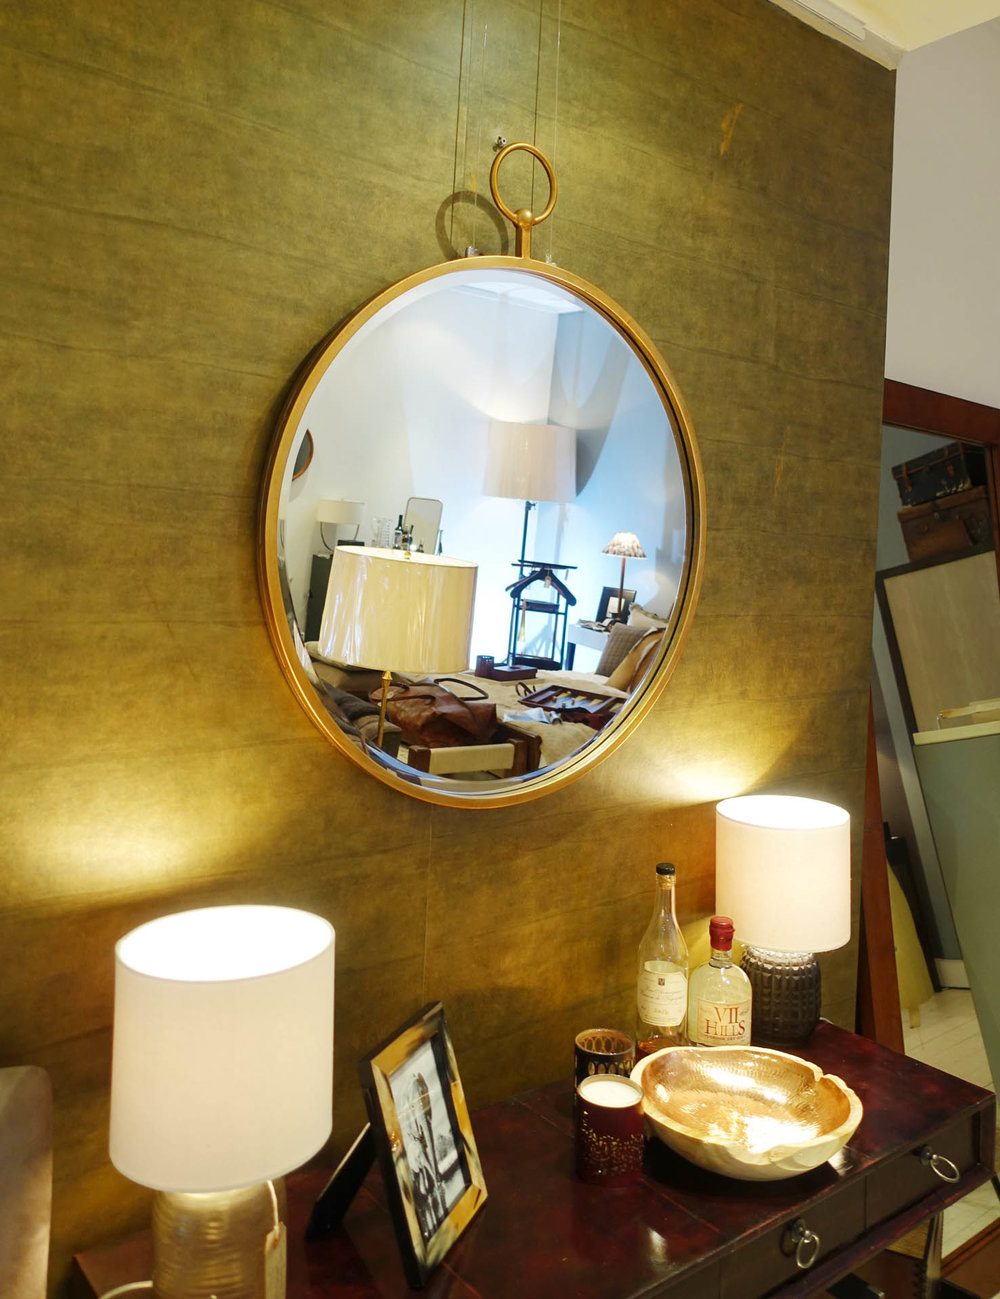 The brass ring mirror, wooden copper bowls make a bold statement.